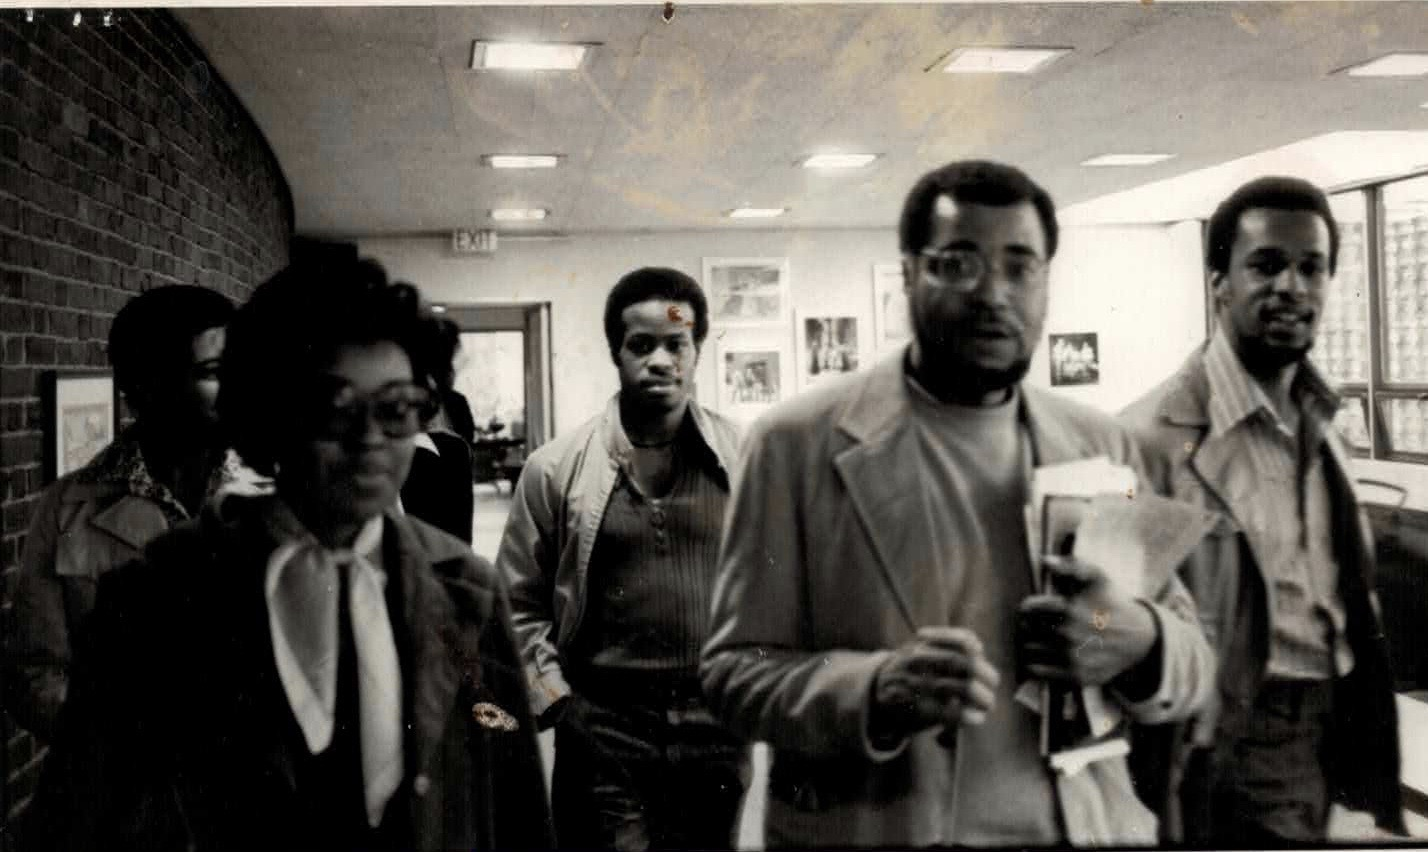 james-earl-jones-with-bostic-and-elam-1975